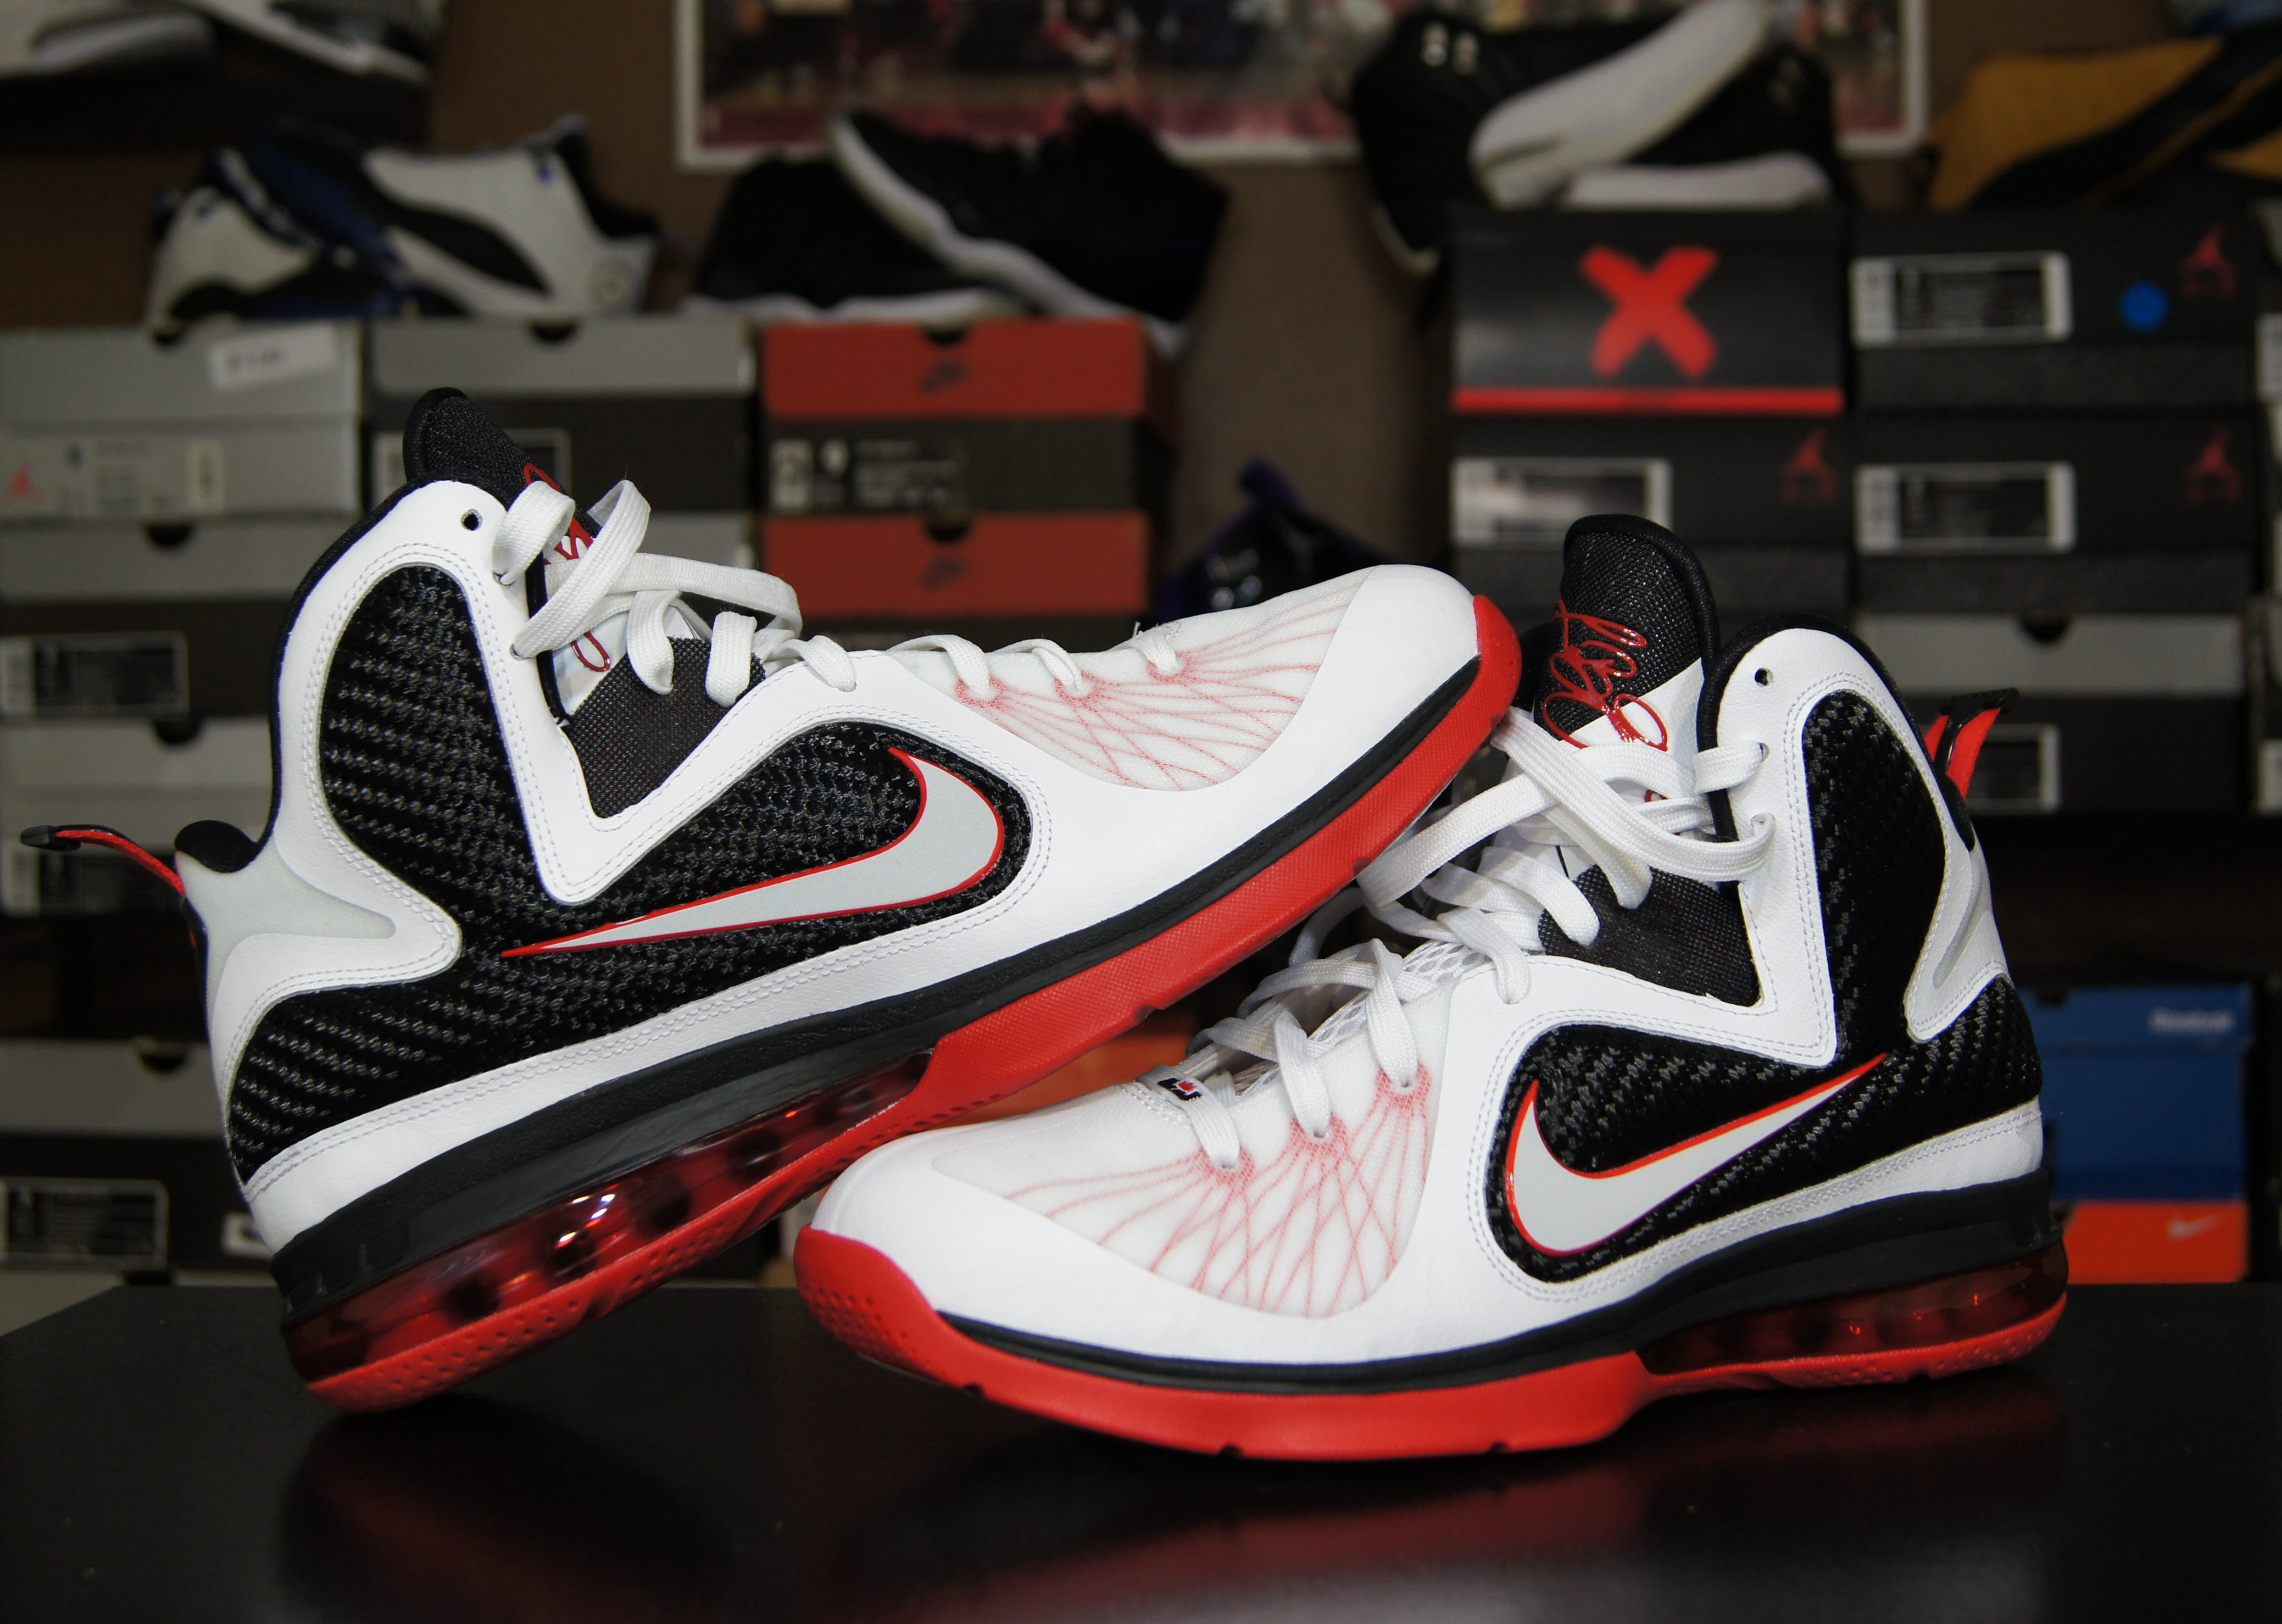 new arrivals 13c67 95b61 First Impression LeBron 9 Scarface